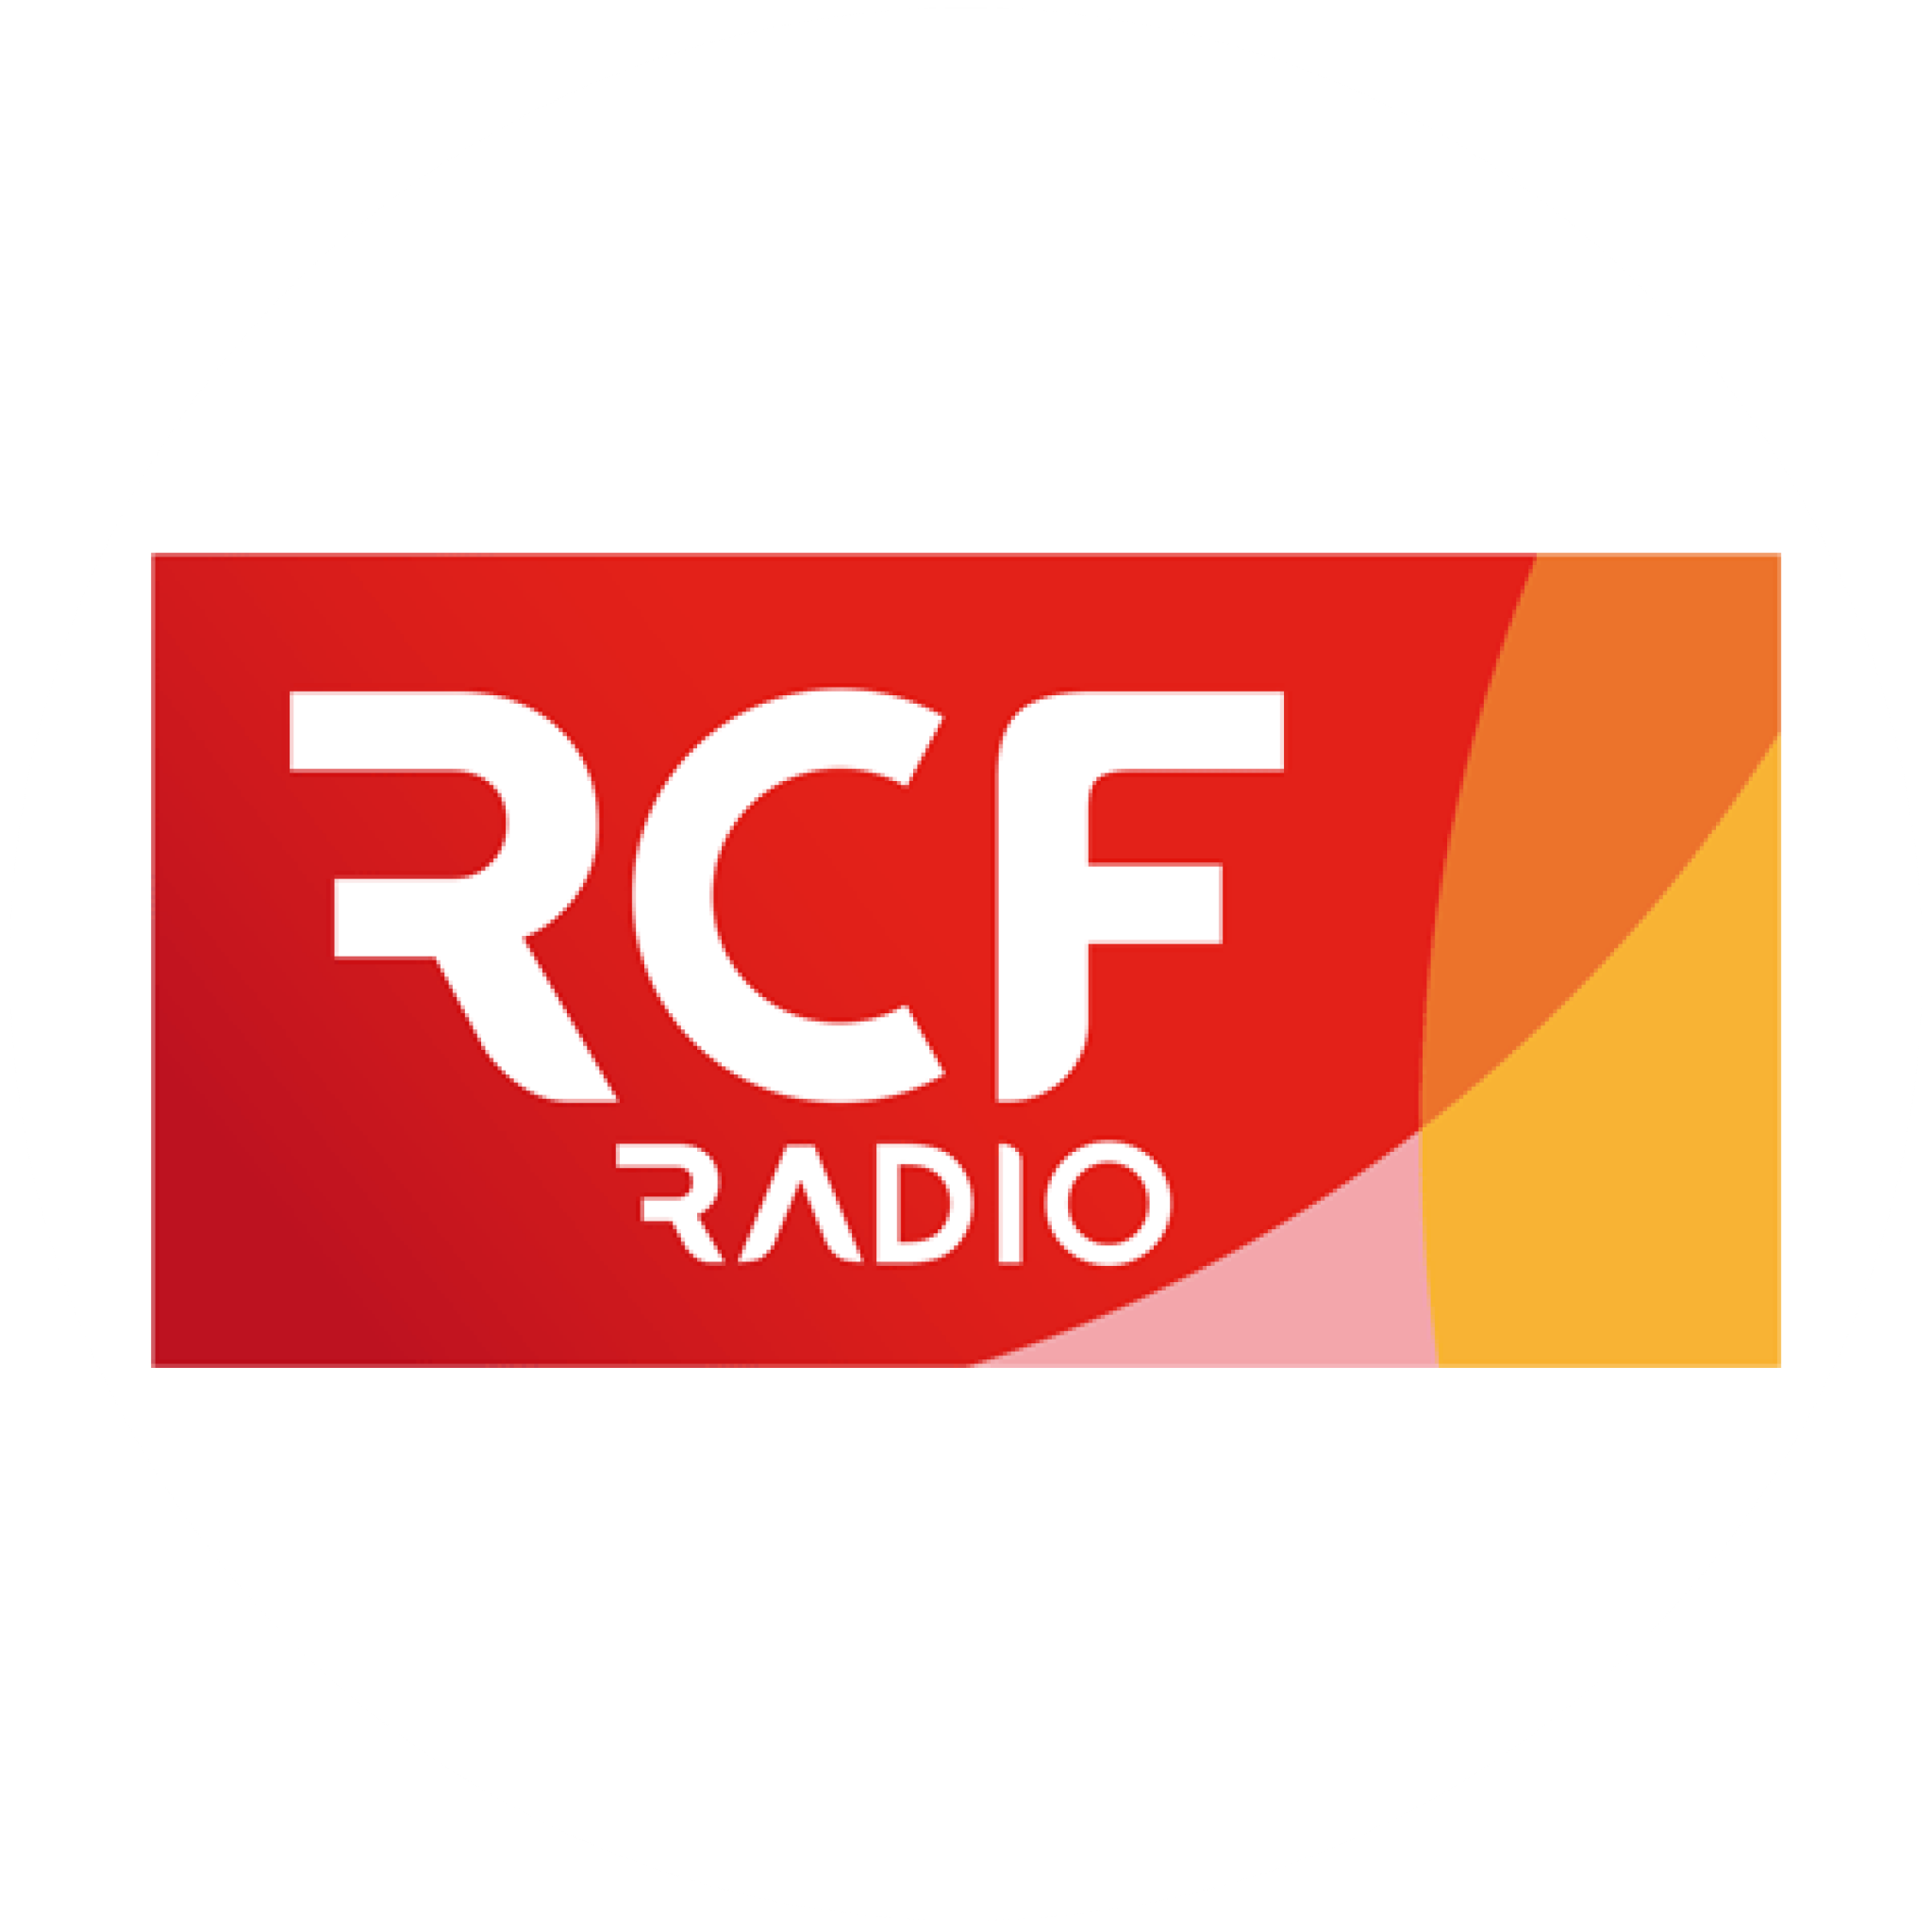 MF_RFC radio